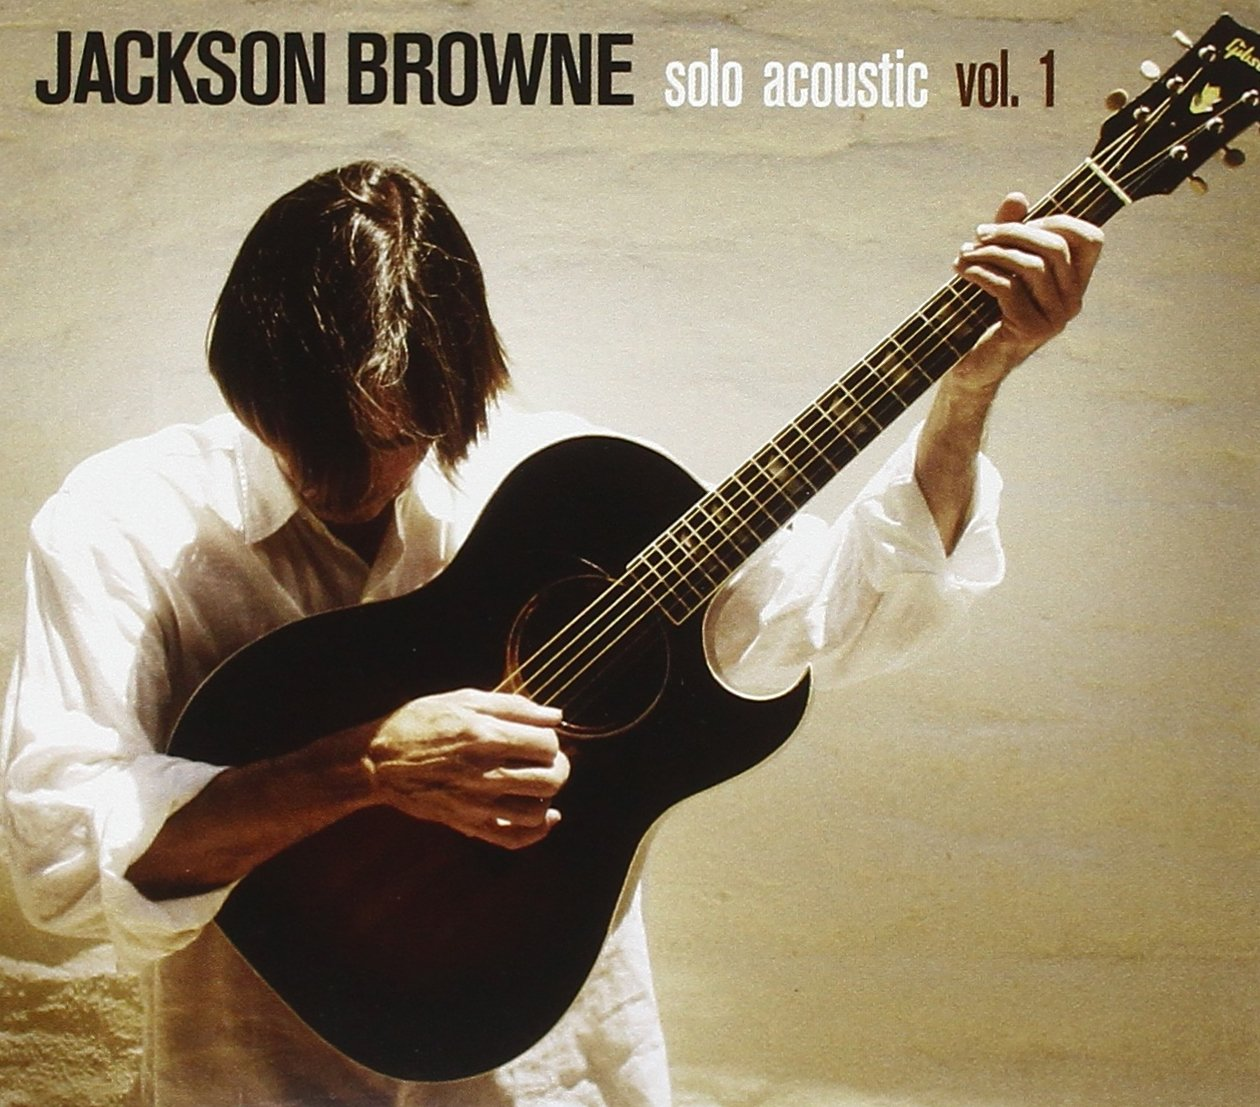 Solo Acoustic, Volume 1 by Inside Recordings